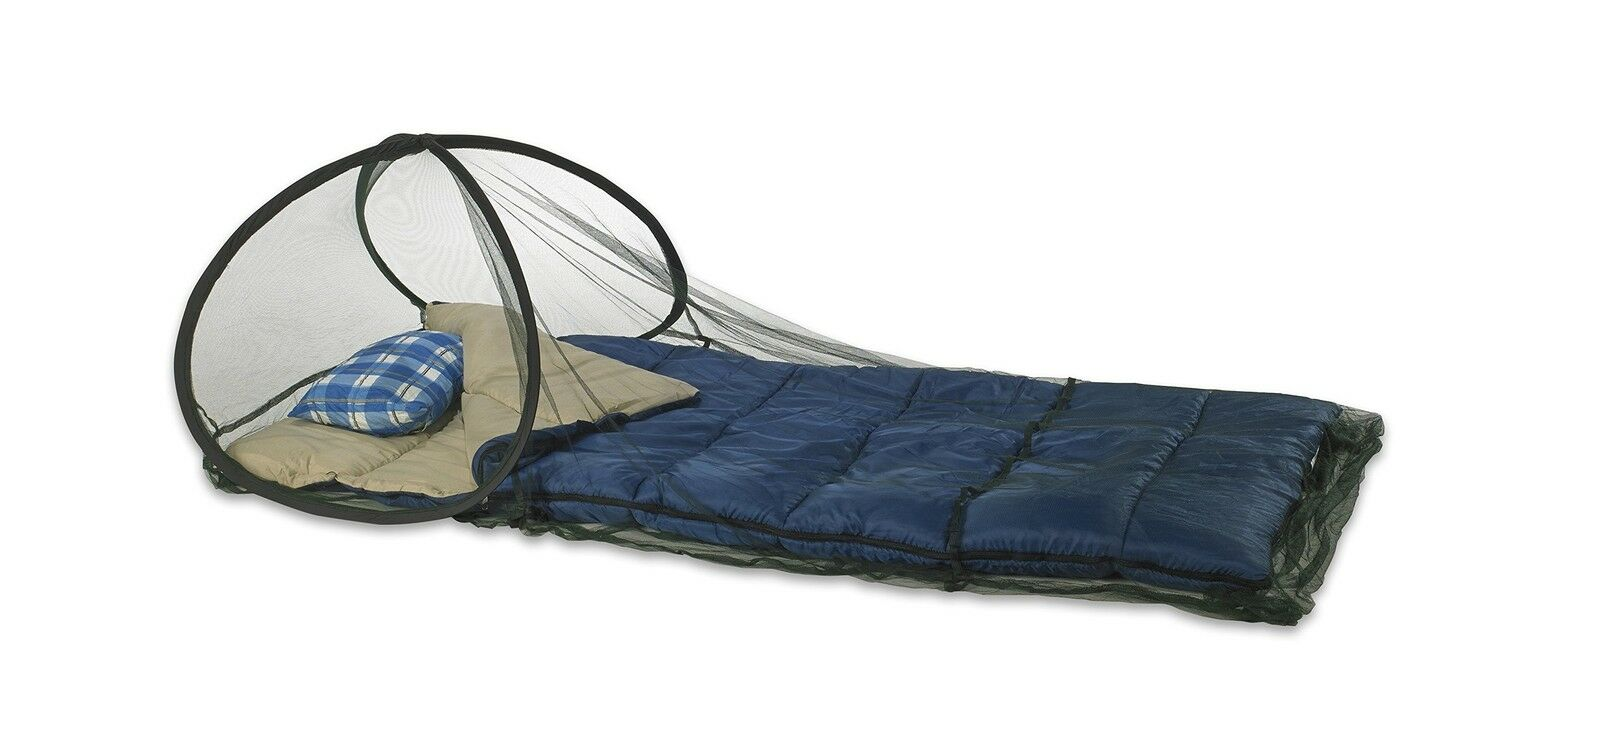 Atwater Carey Sleep Screen Pop-Up Mosquito Net Pre-treated with... Free Shipping